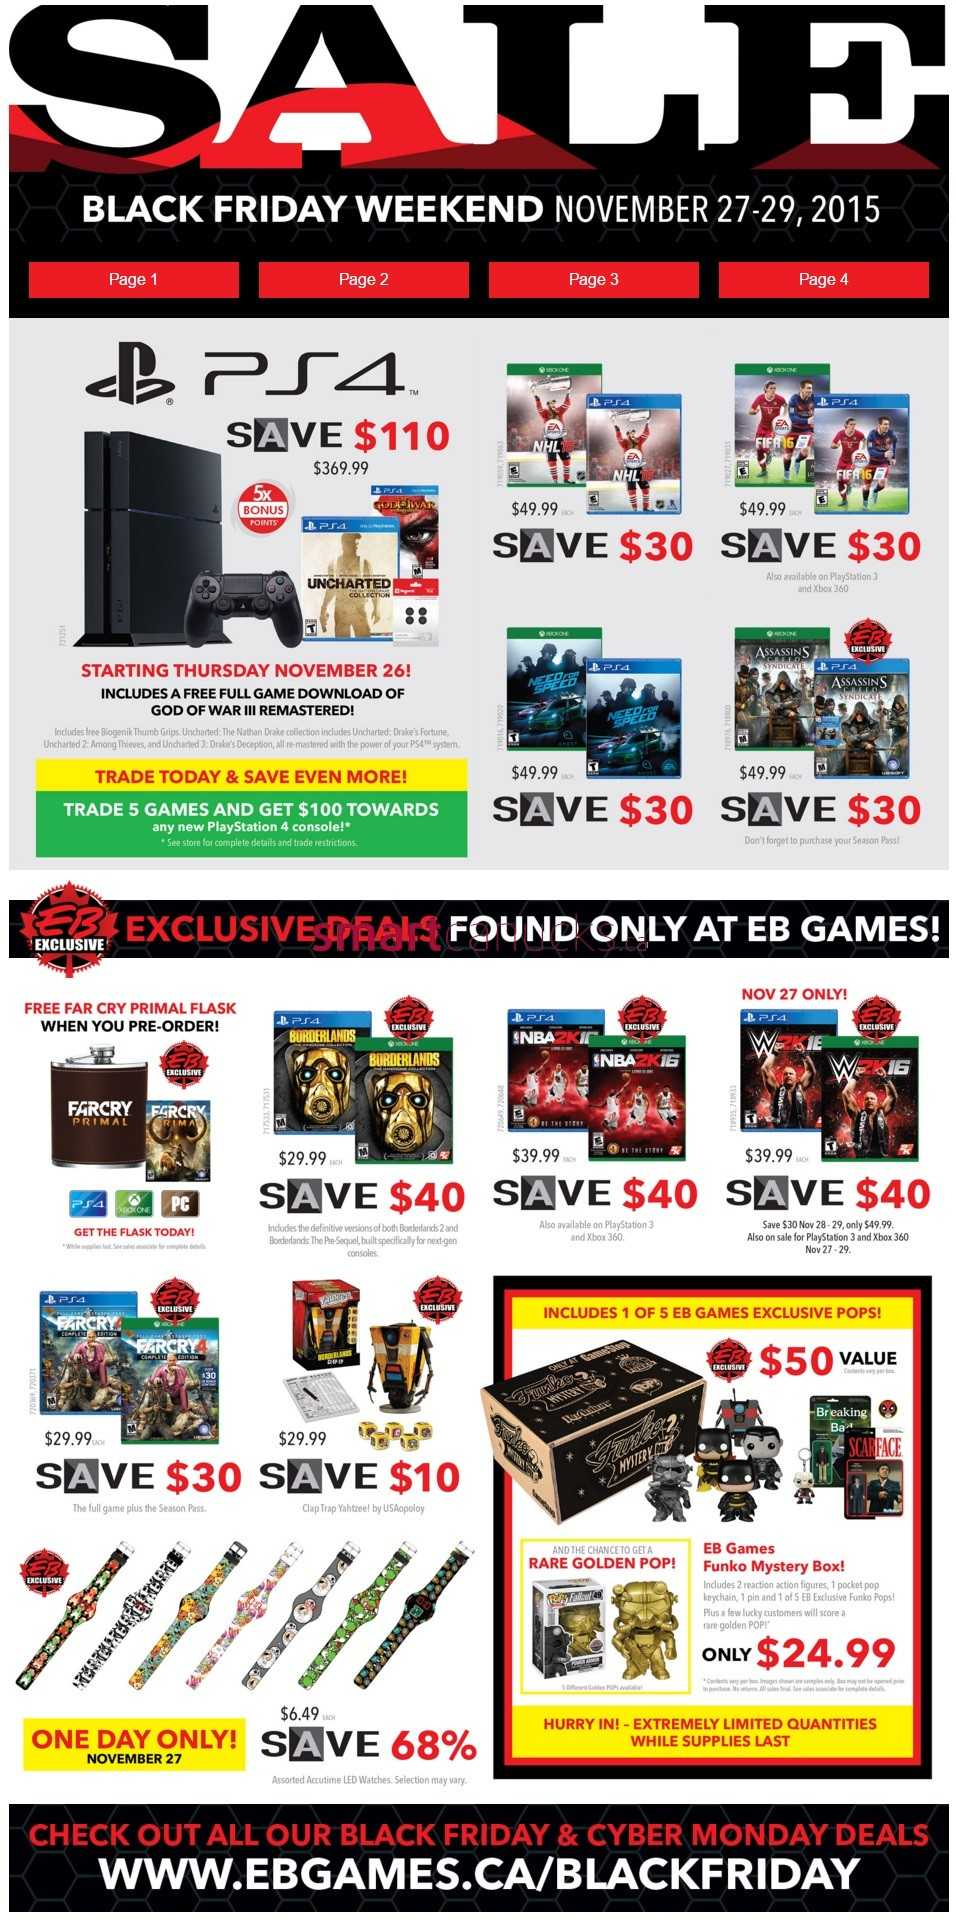 Eb games coupon code : Ninja restaurant nyc coupons